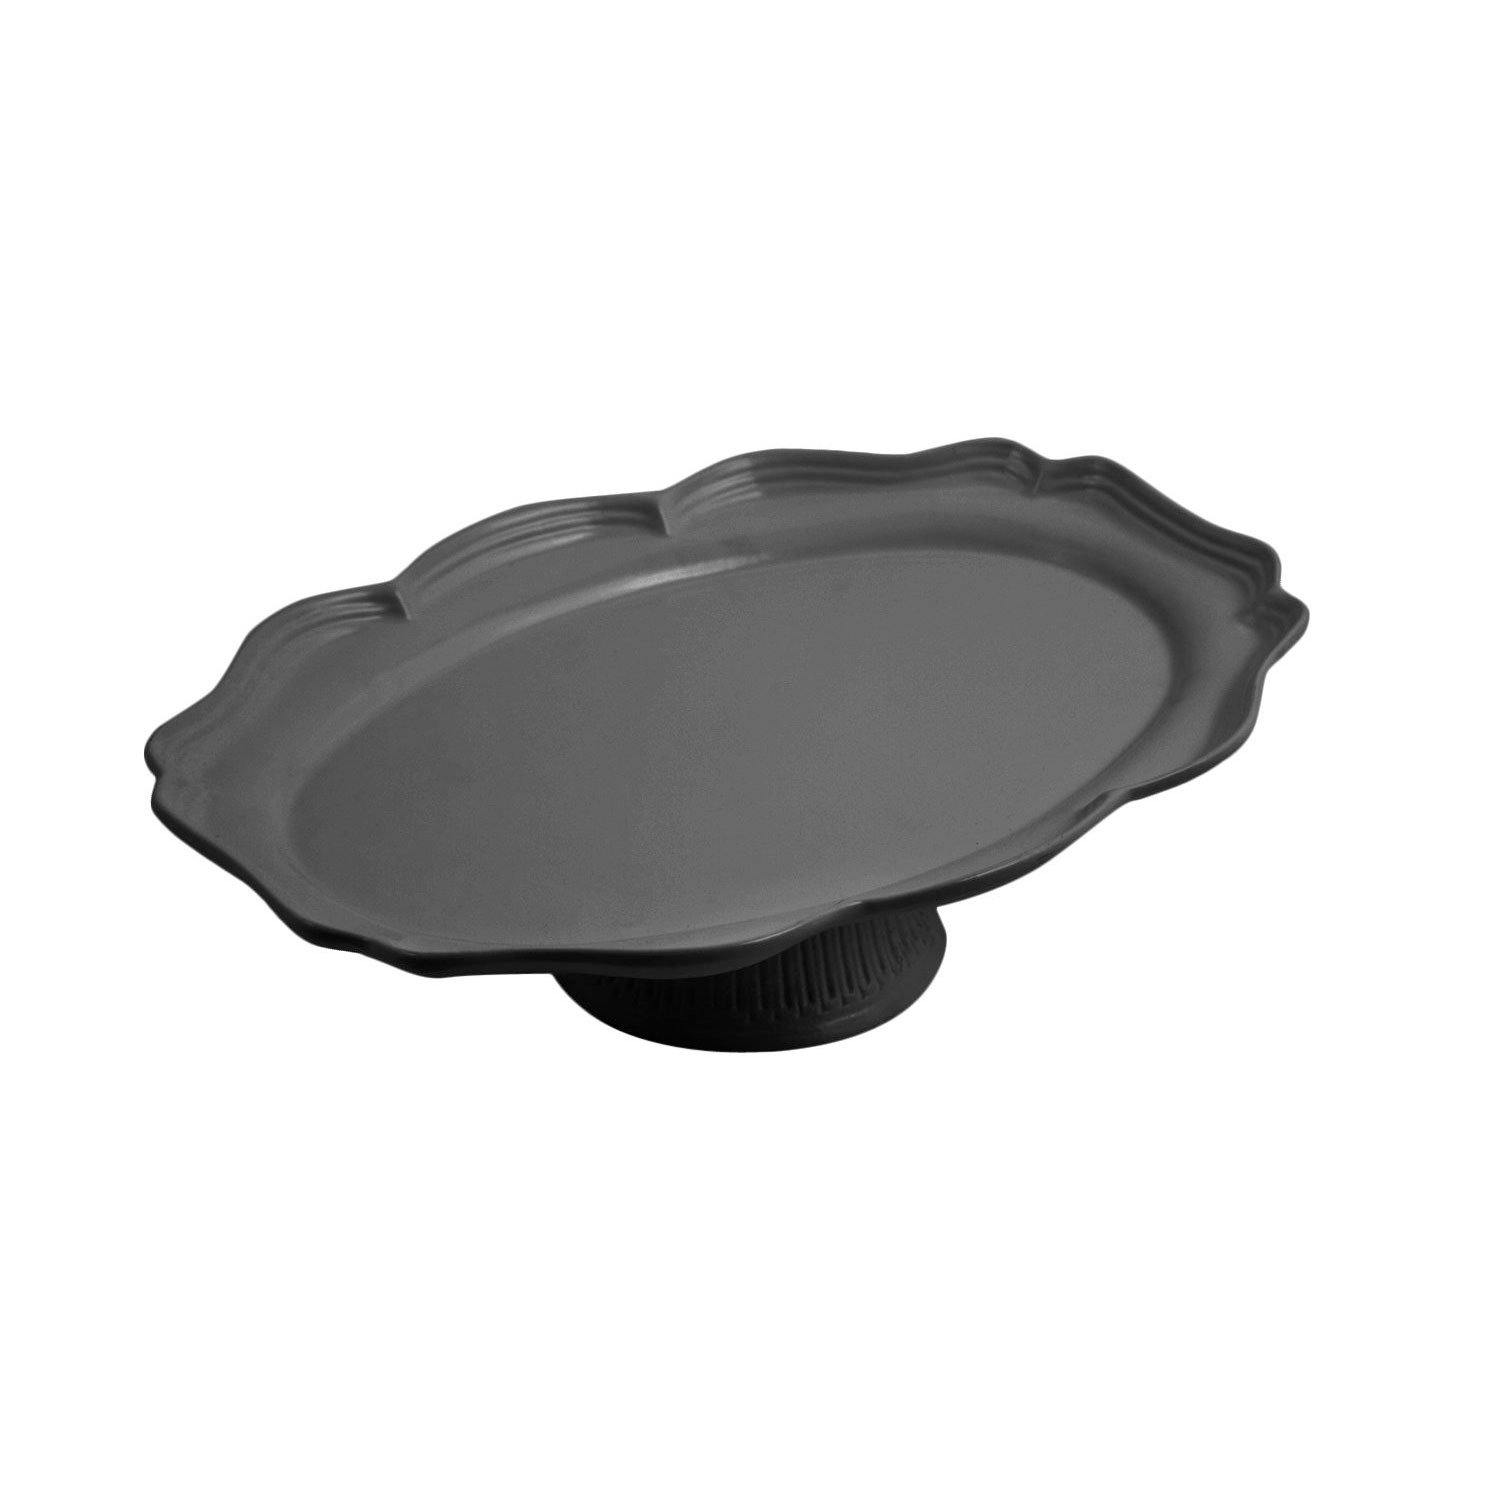 14 3/4 x 20 x 4 3/8 inch Oval Pedestal Tray Sandstone Black Speckled